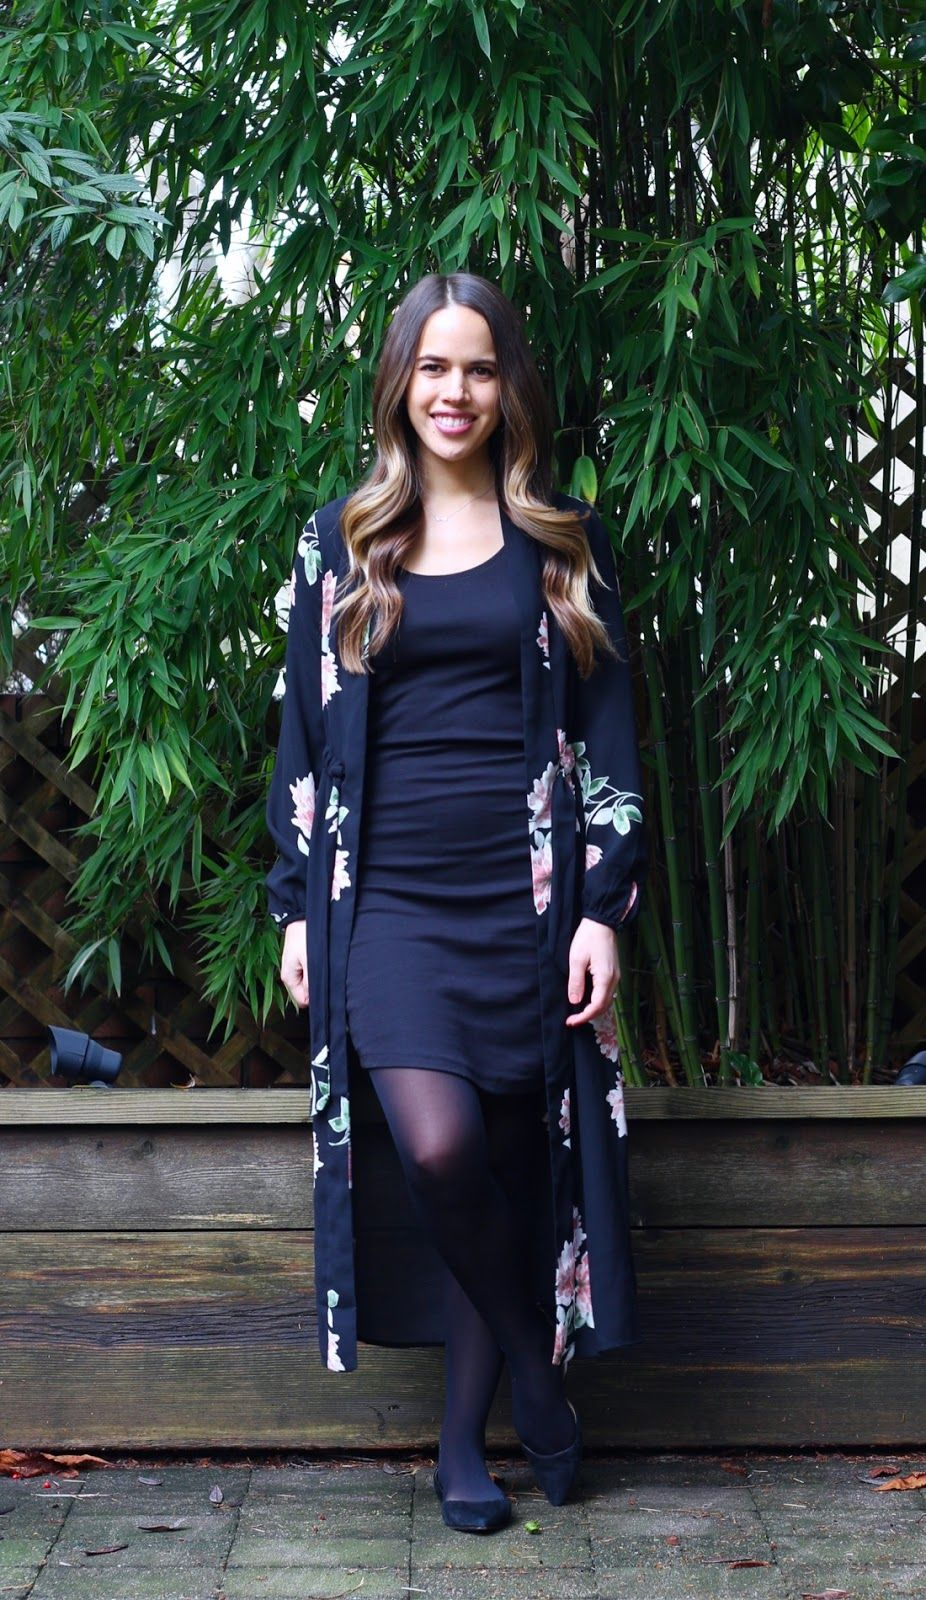 c6b0f10fe59 Jules in Flats - Maxi Floral Kimono with T-Shirt Dress for Work (Business  Casual Winter Workwear on a Budget)